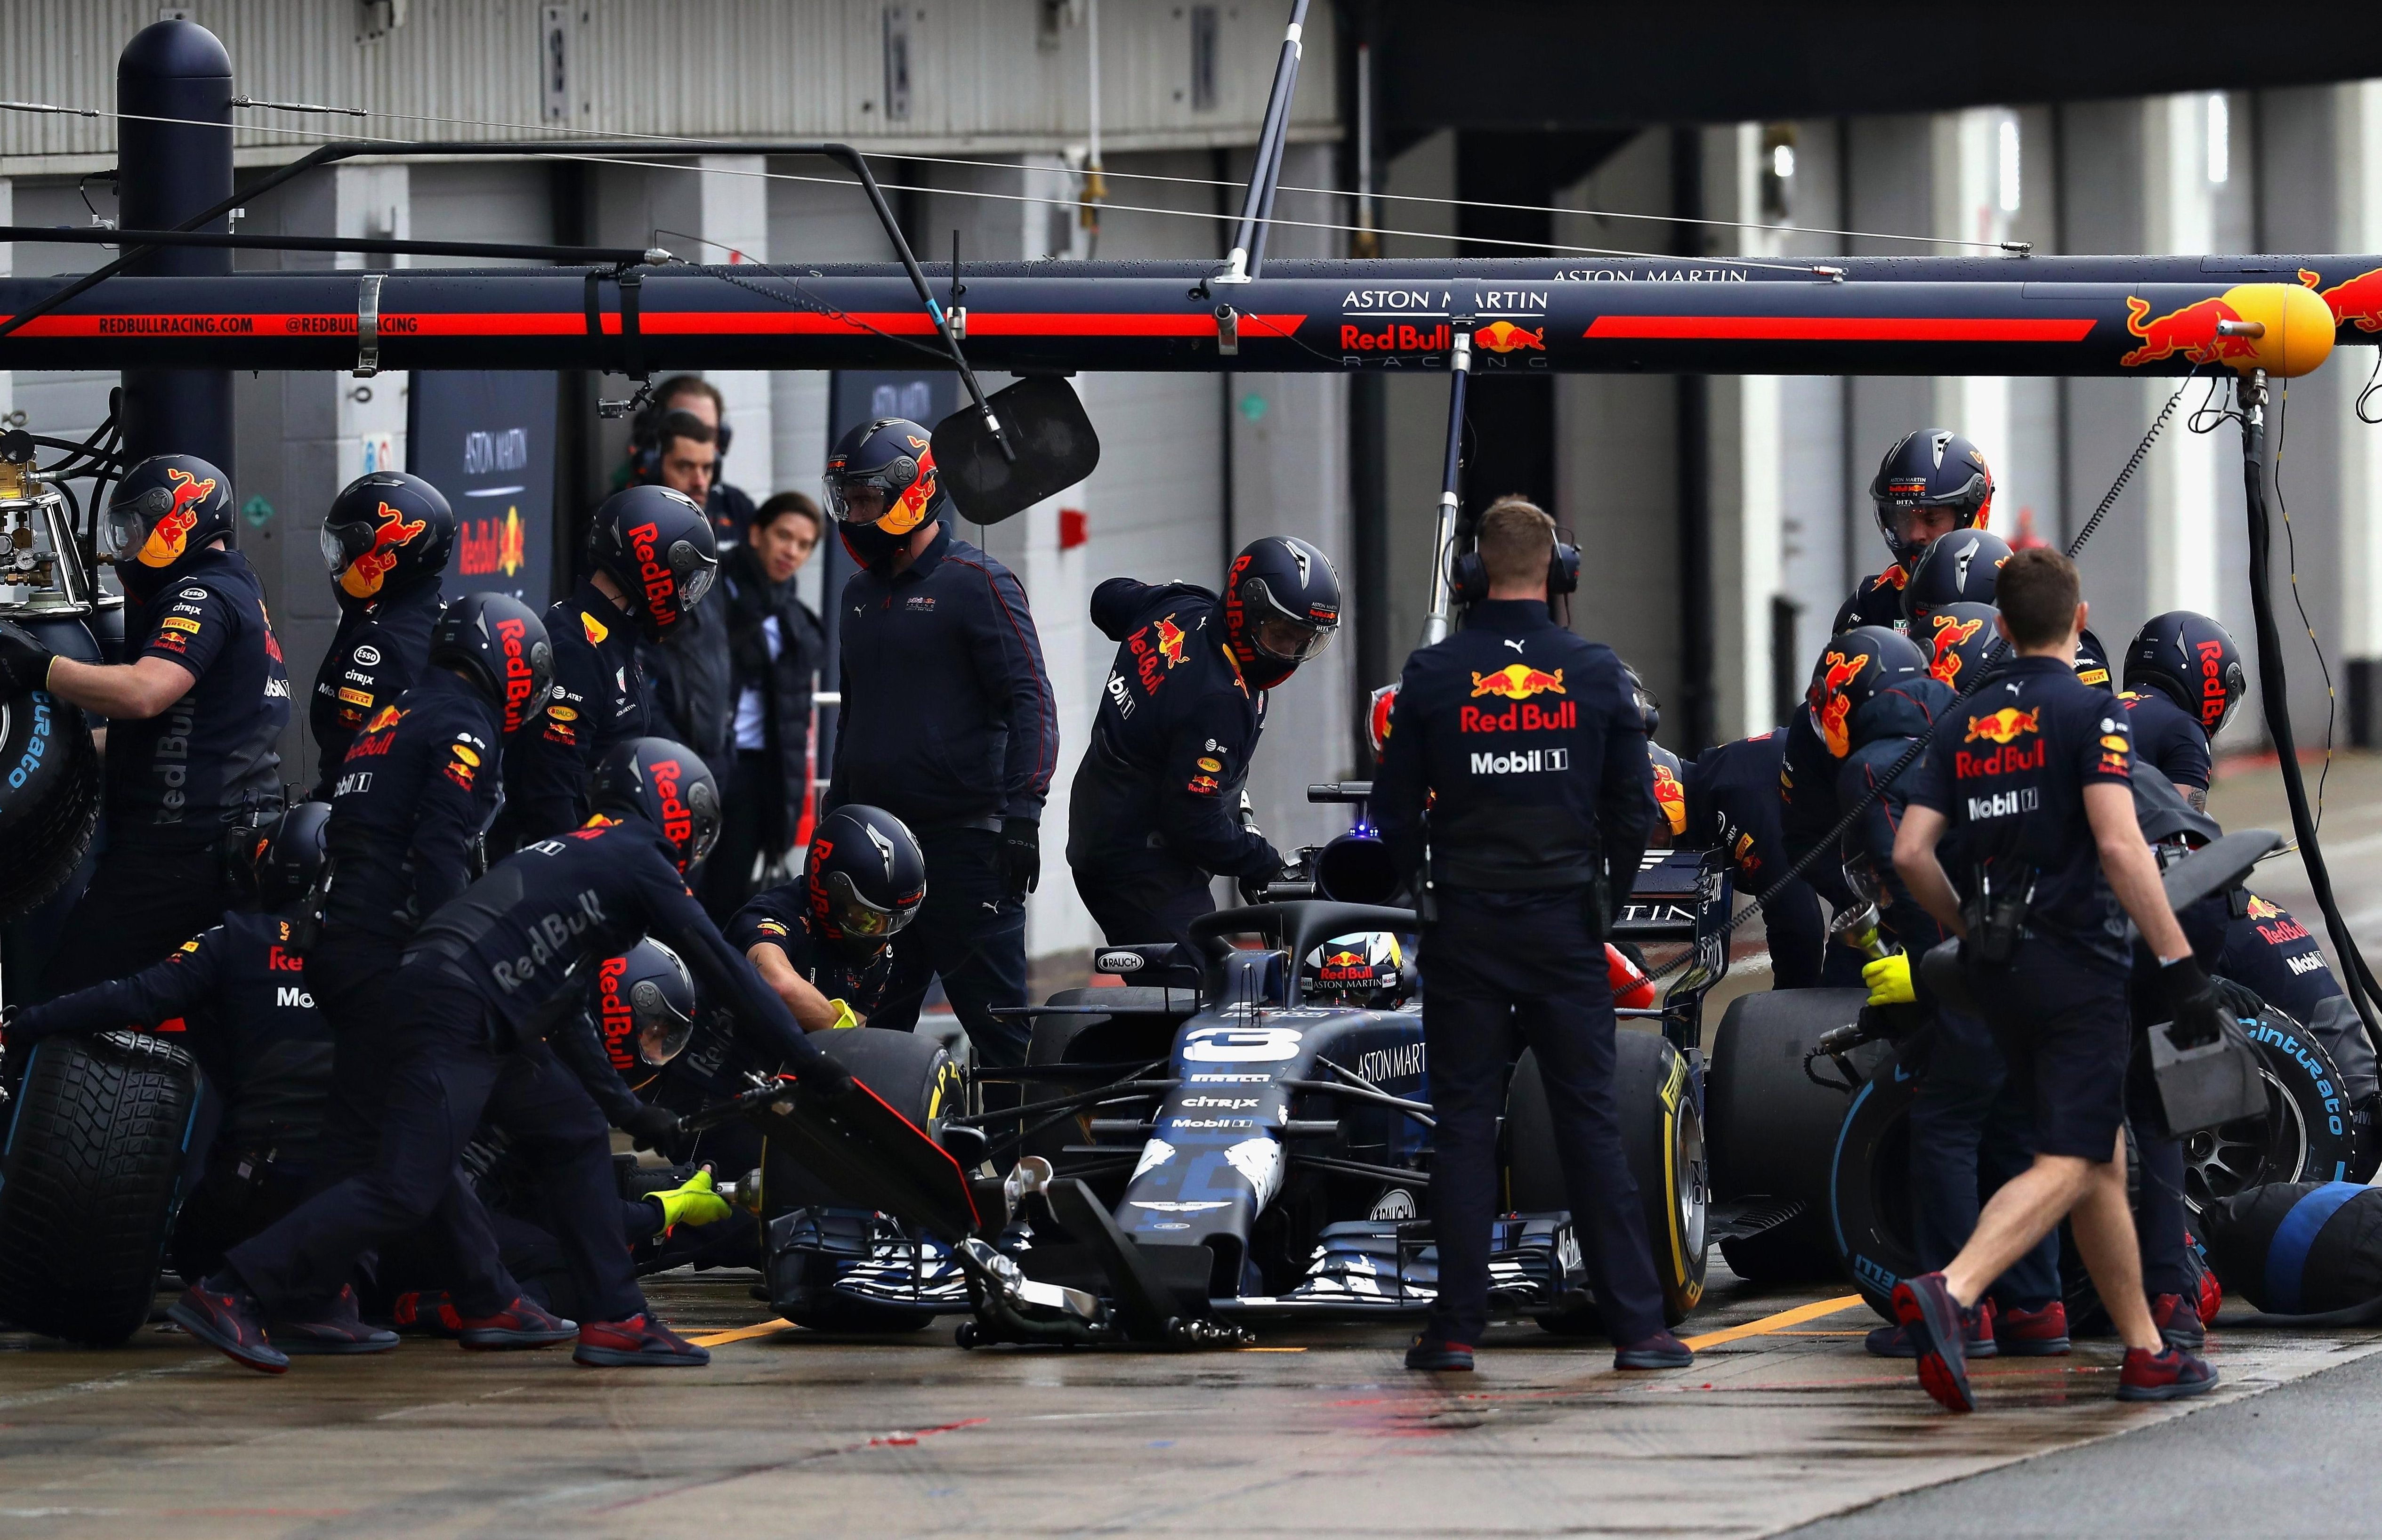 Red Bull insist that the damage is only minor